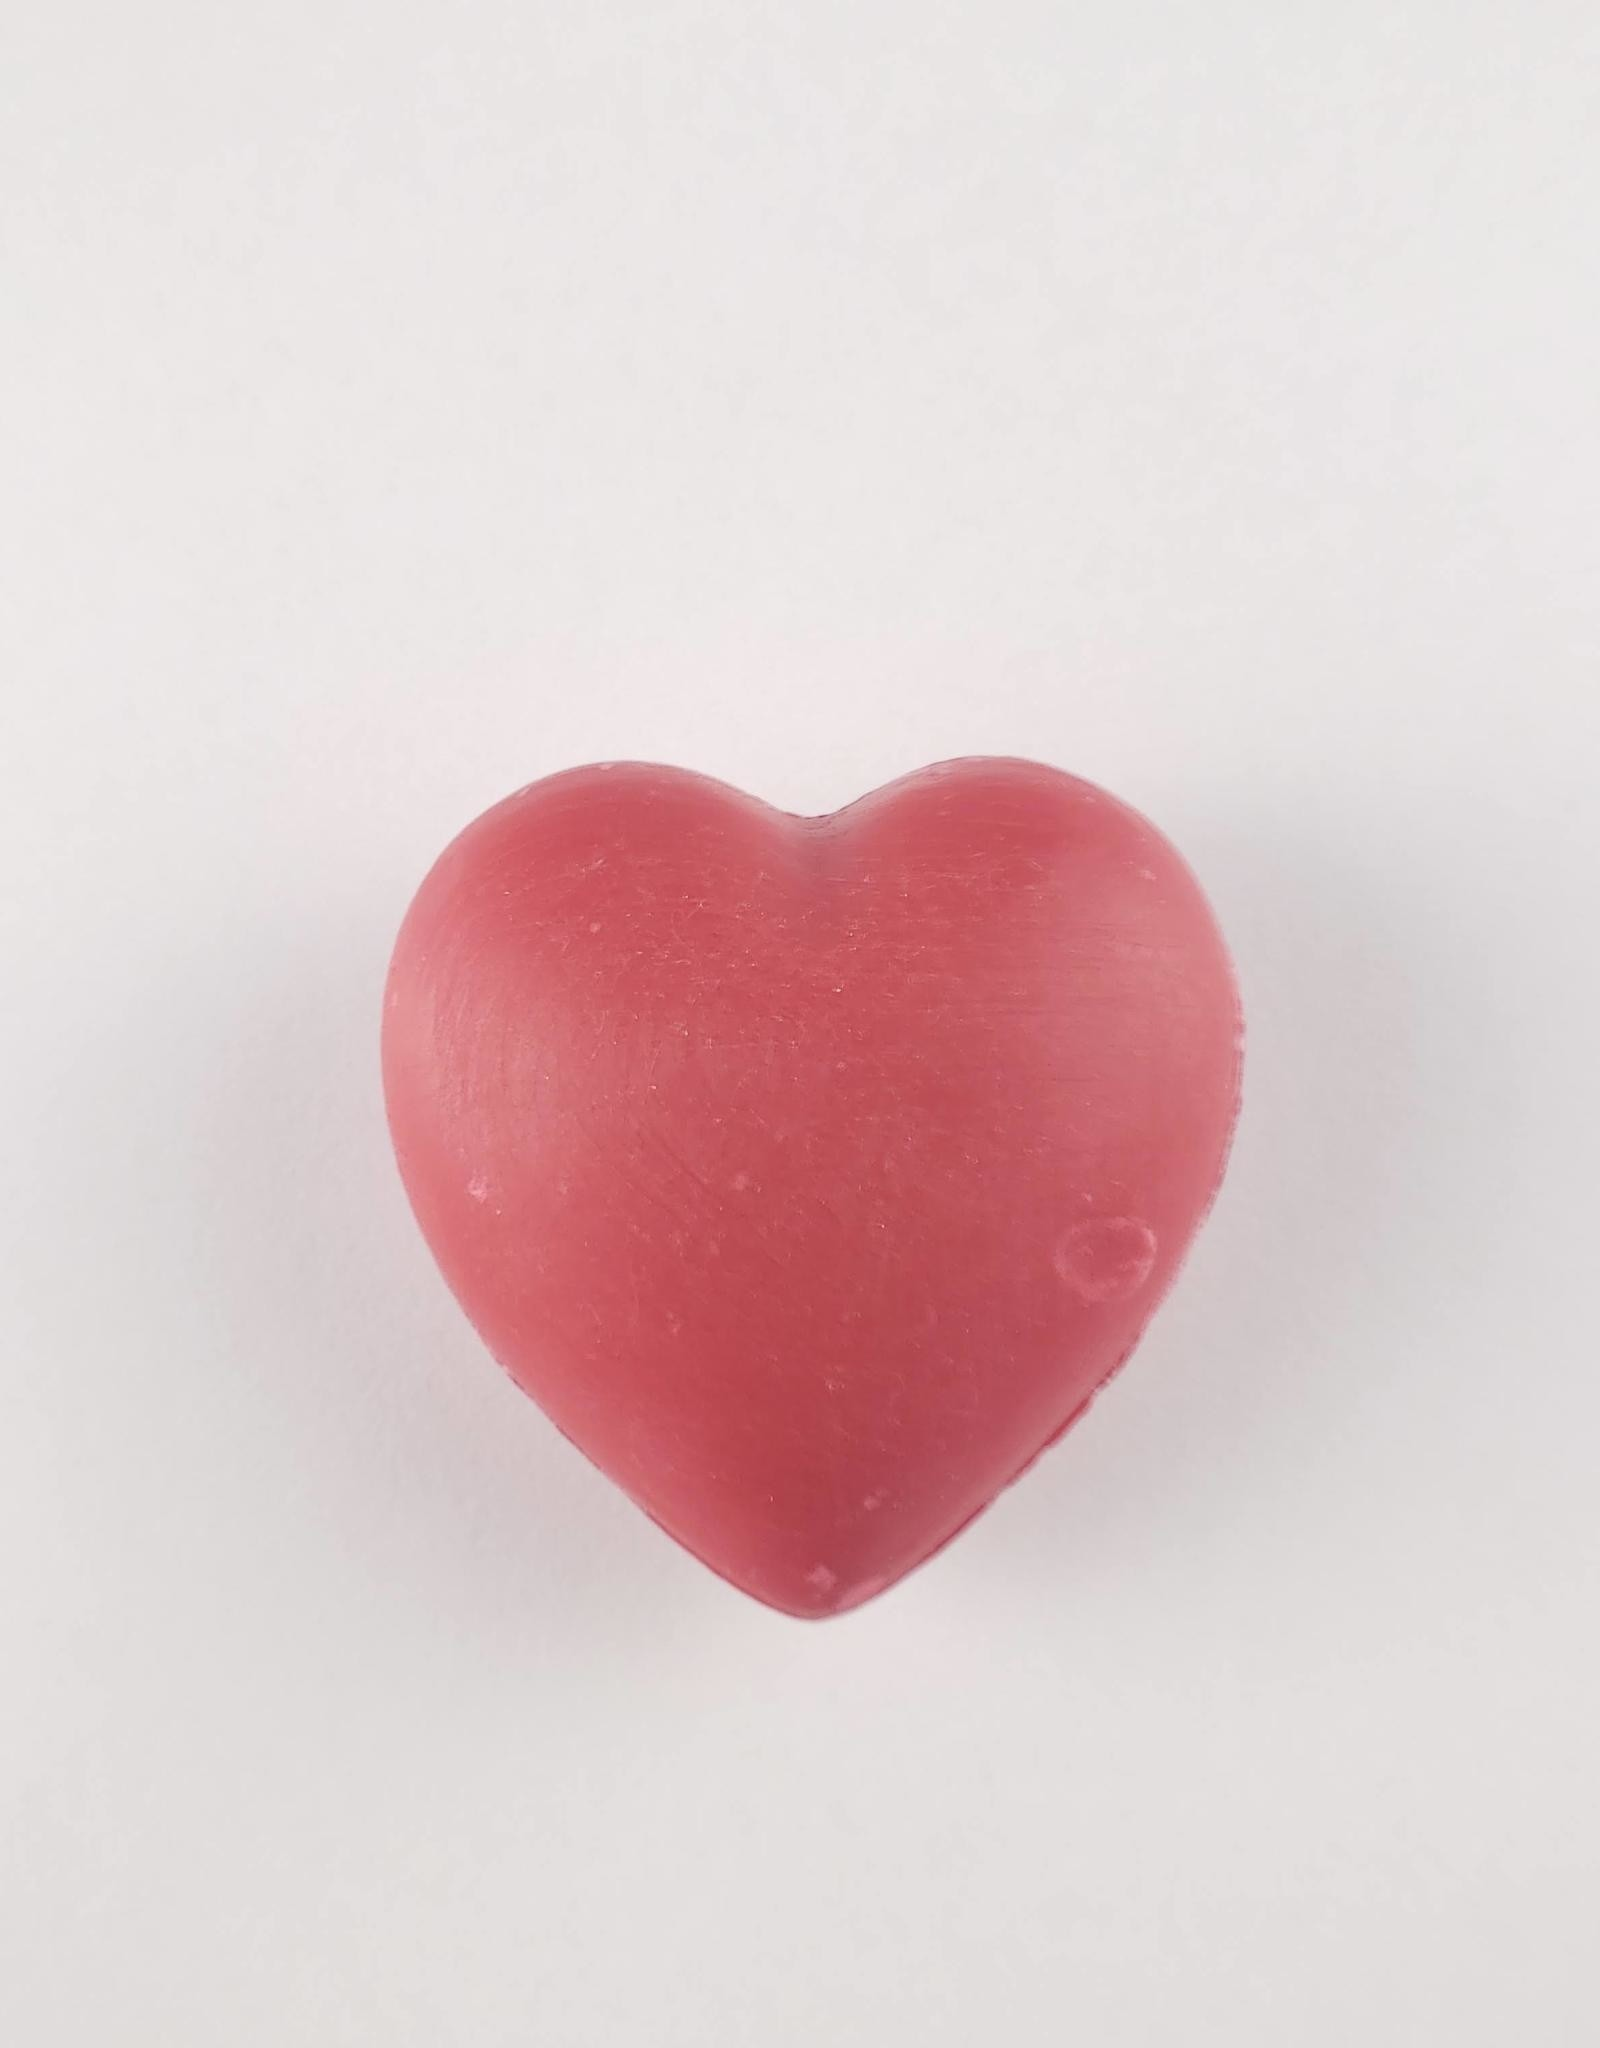 Apple of Love 25g Soap